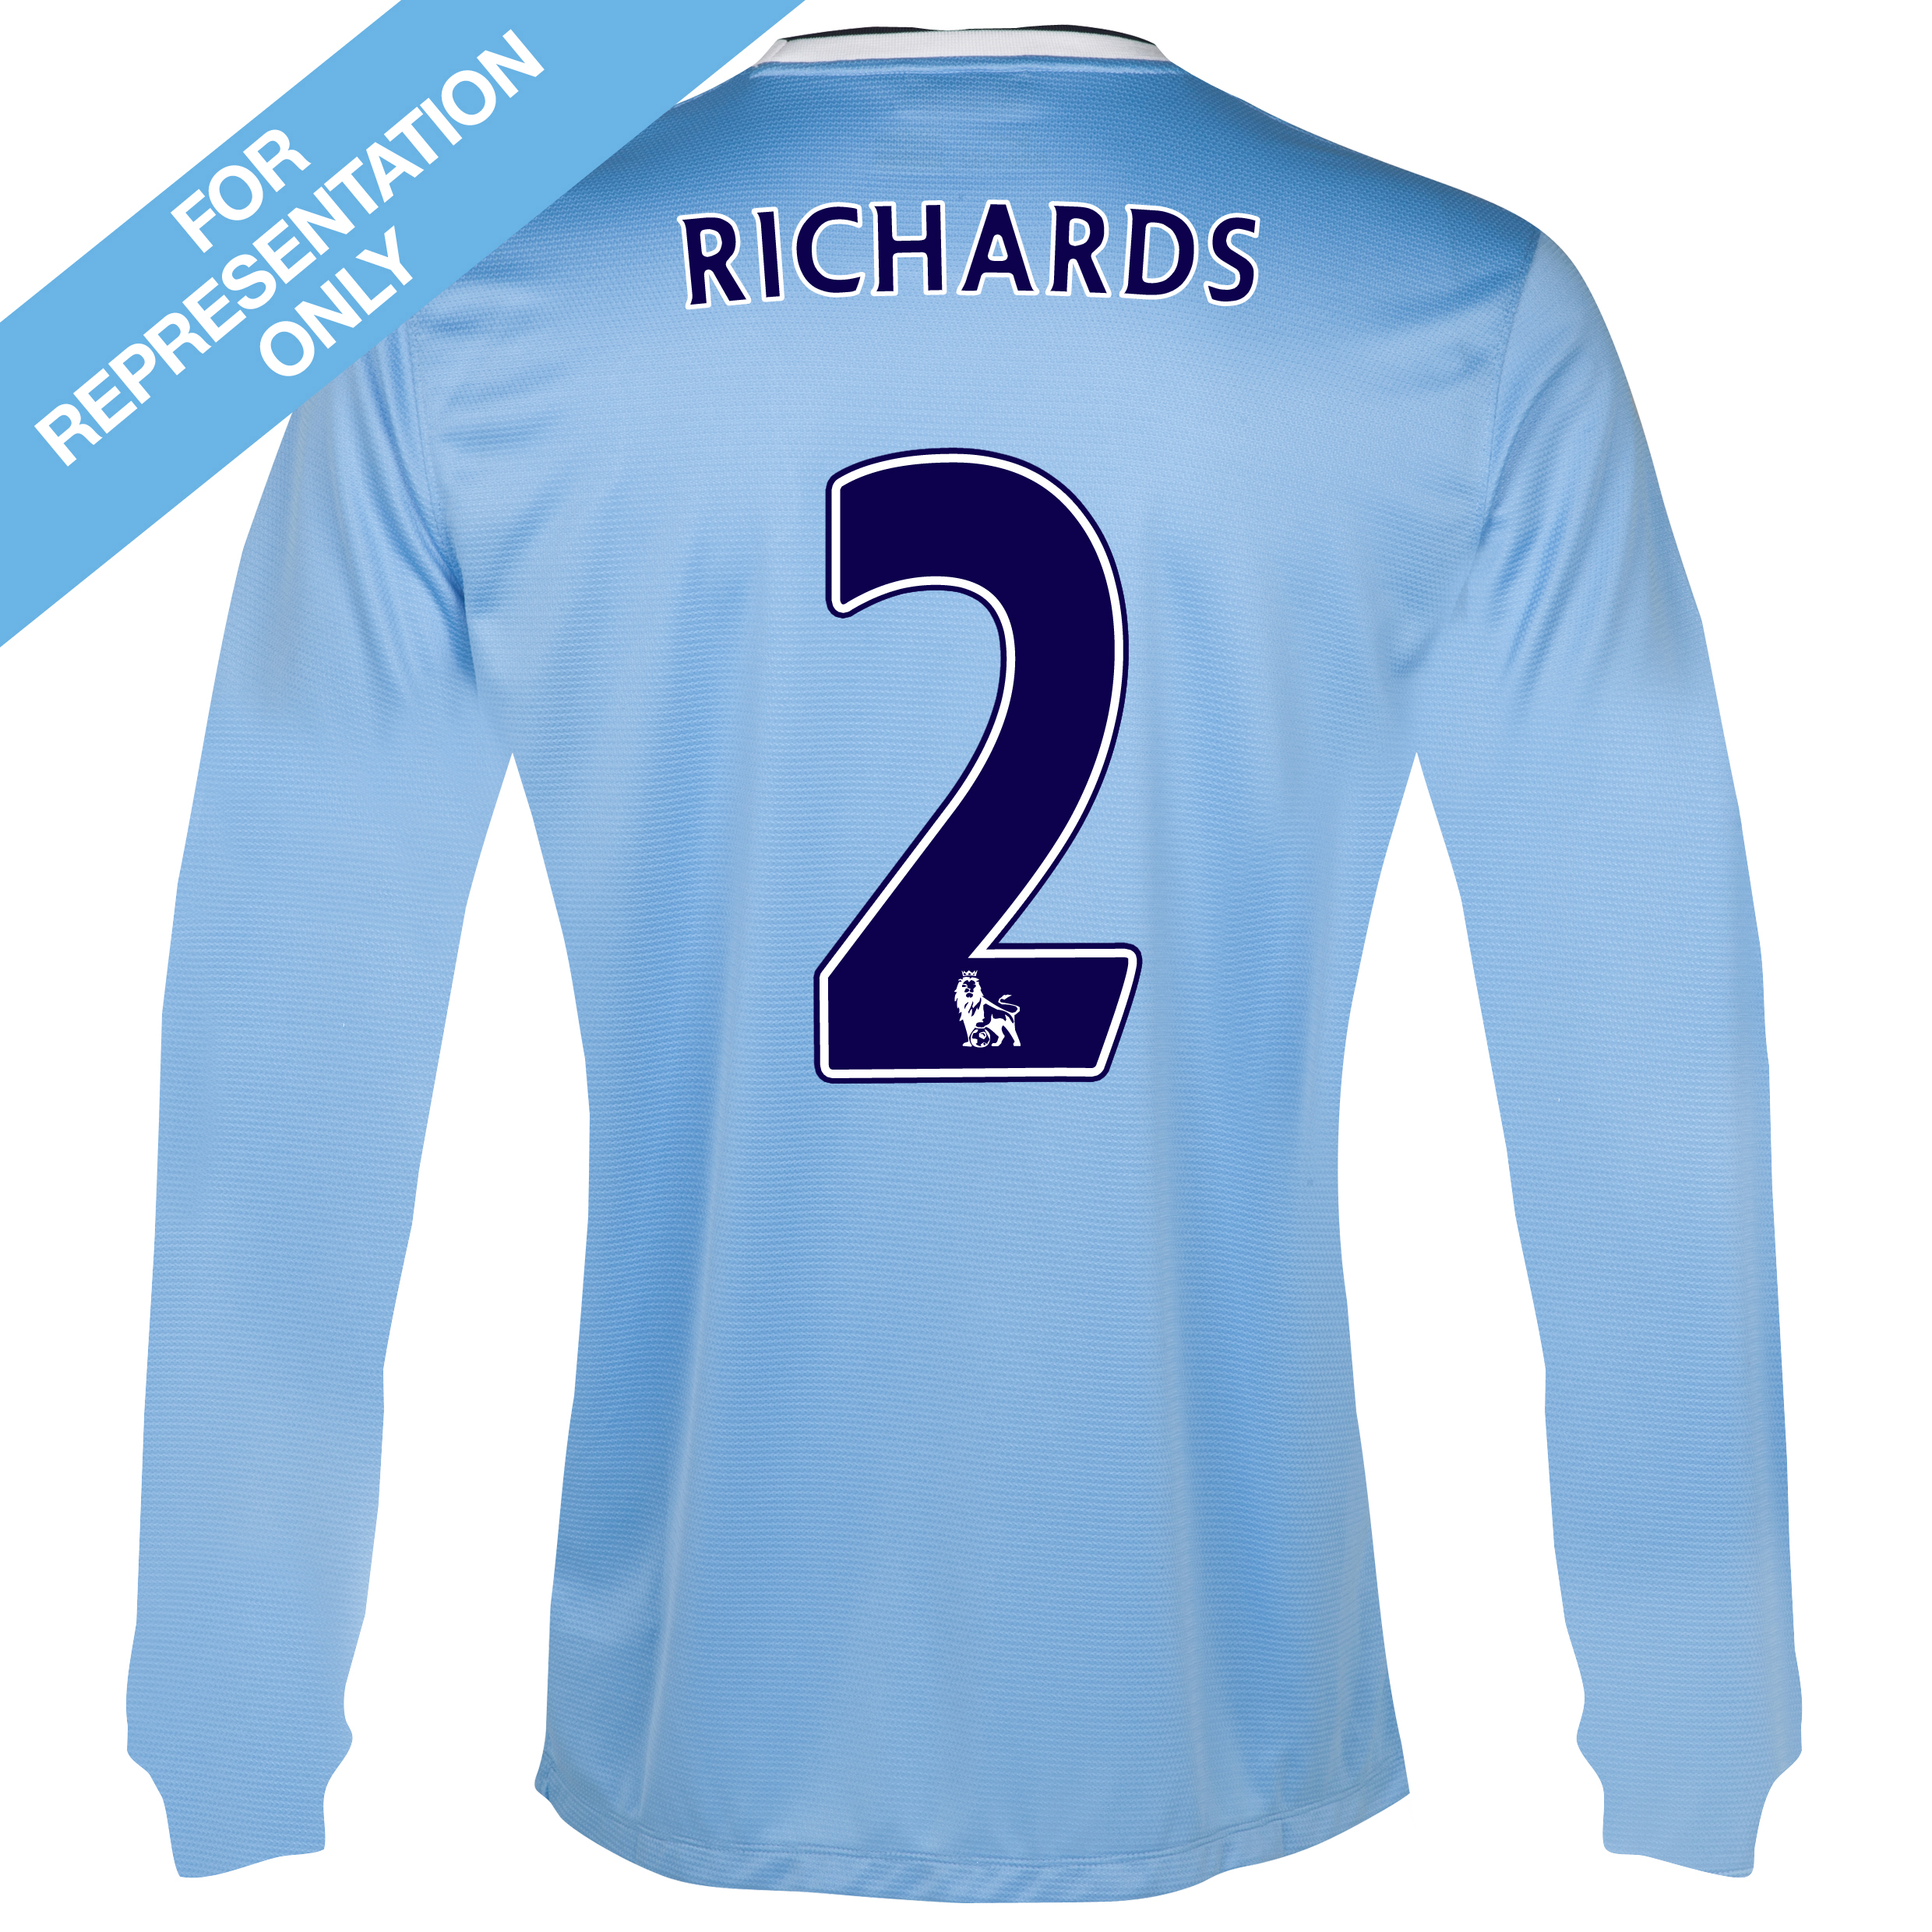 Manchester City Home Shirt 2013/14 - Long Sleeved - Junior with Richards 2 printing